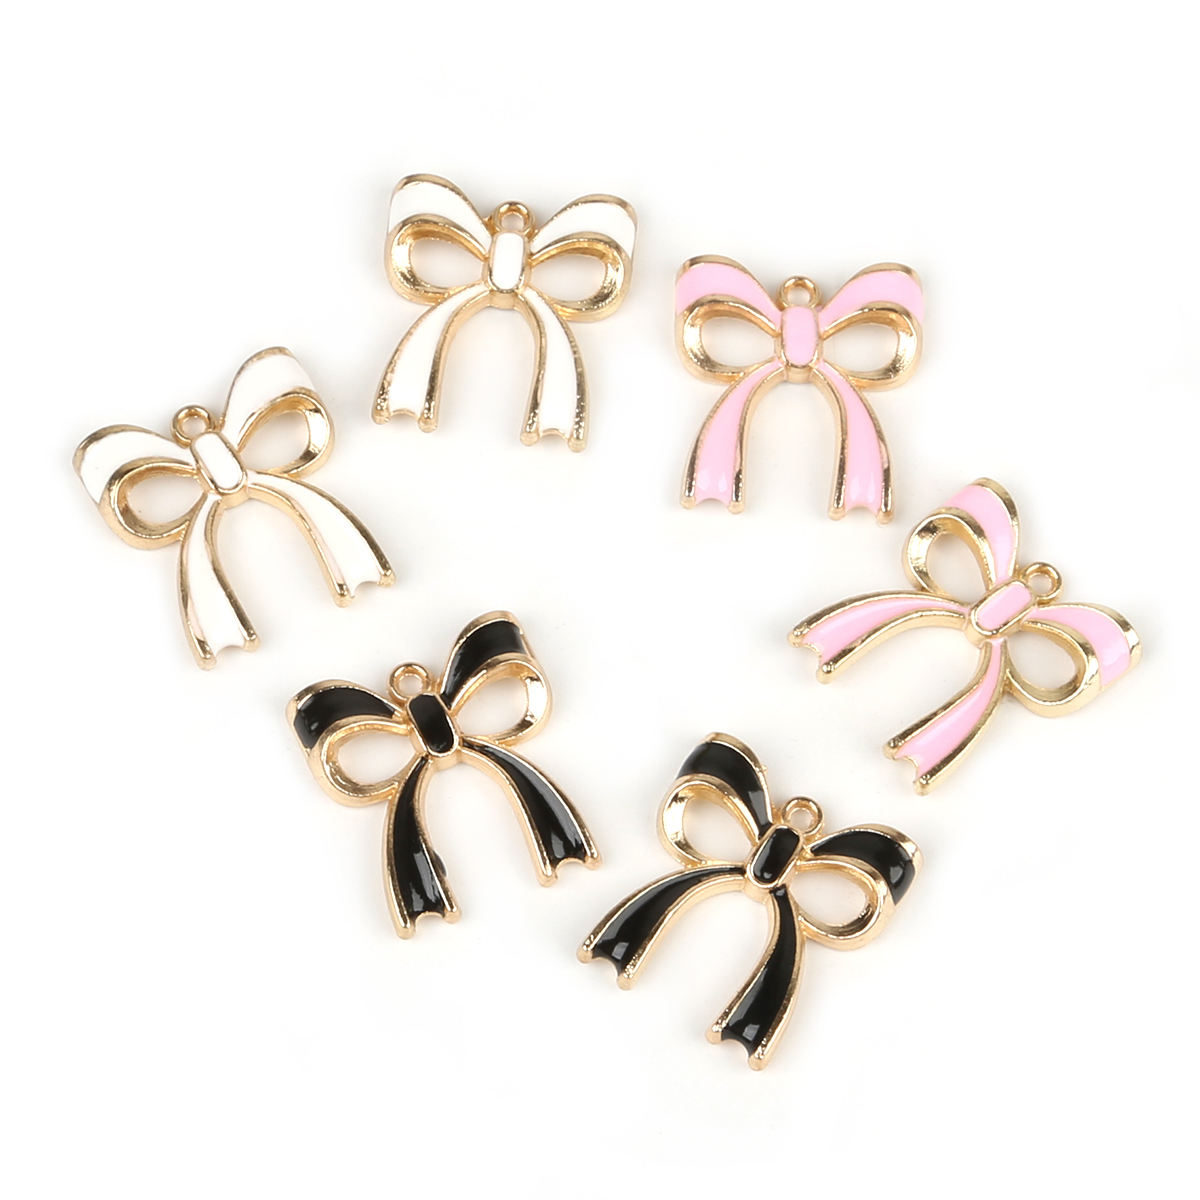 Wholesale 9-10pcs/bag 17x20mm Bowknot Pendants Metal Drop Oil Charms For DIY Bracelet Necklace Earrings Jewelry Findings Making